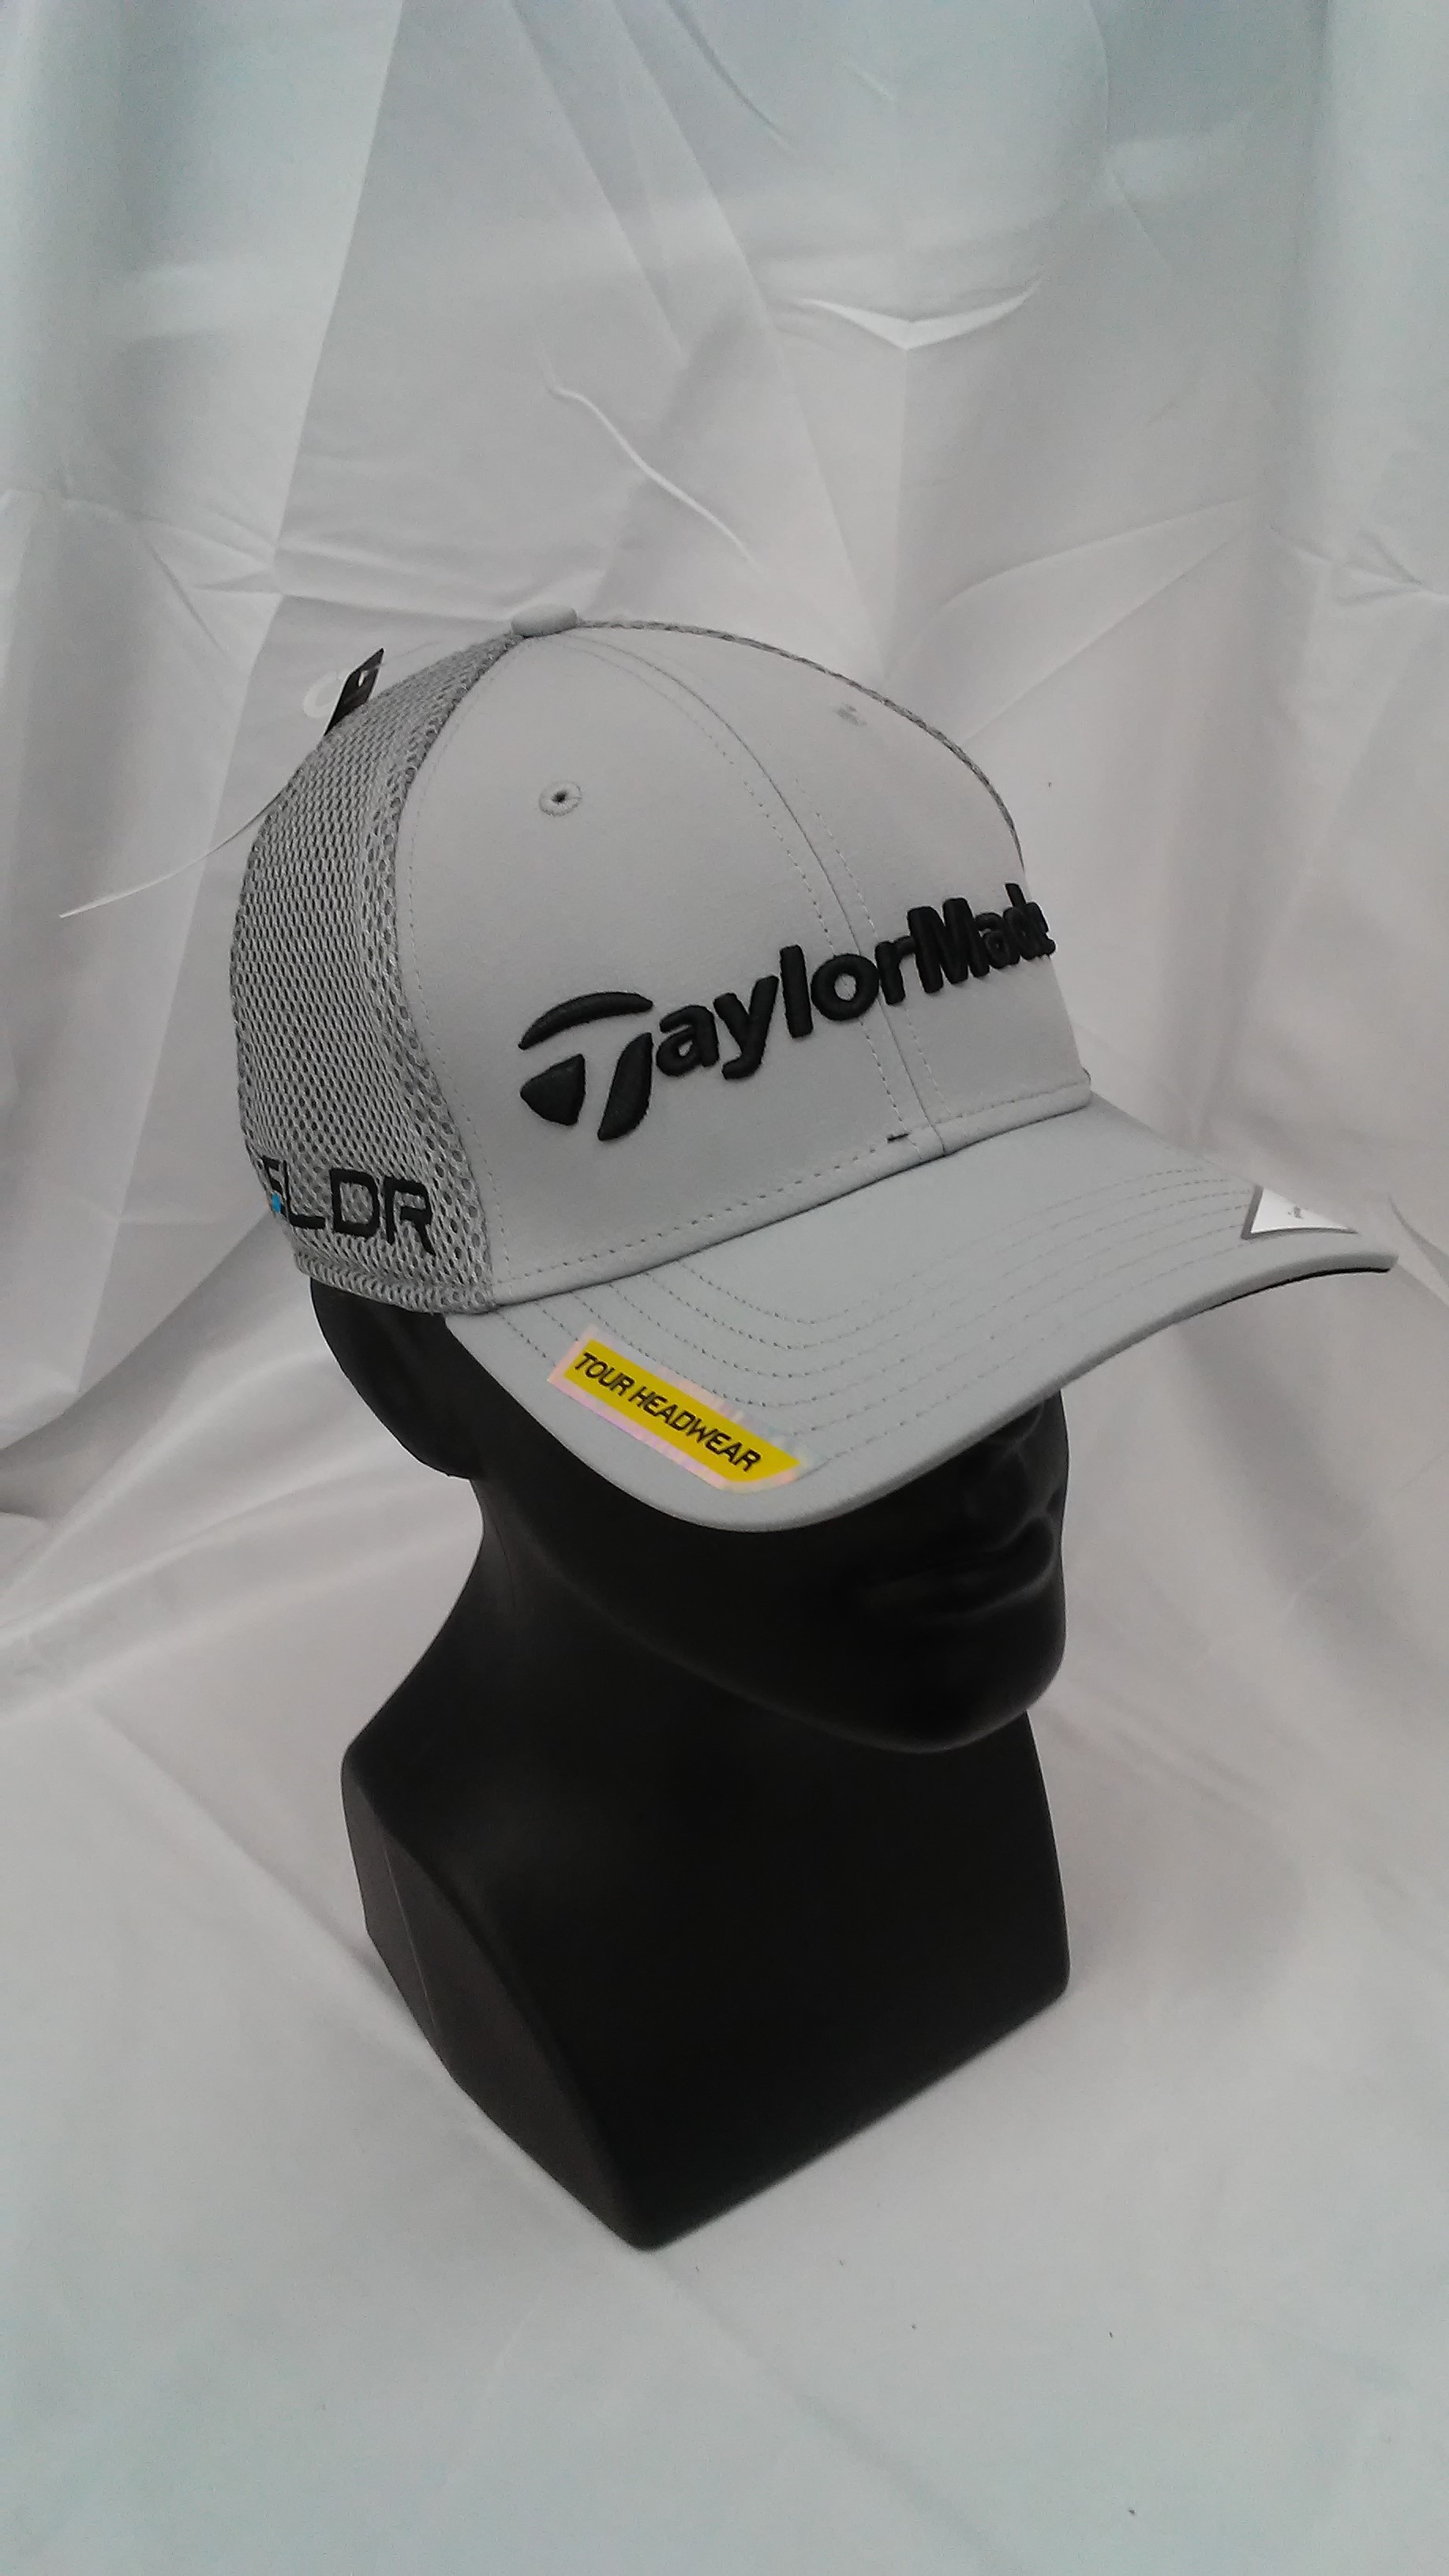 543abade9f2 Visit our eBay Store for more great deals  Hurricane Golf New TaylorMade  Golf Tour Cage Fitted Hat Grey L XL Tour Preferred   SLDR BUY IT NOW  6.99!